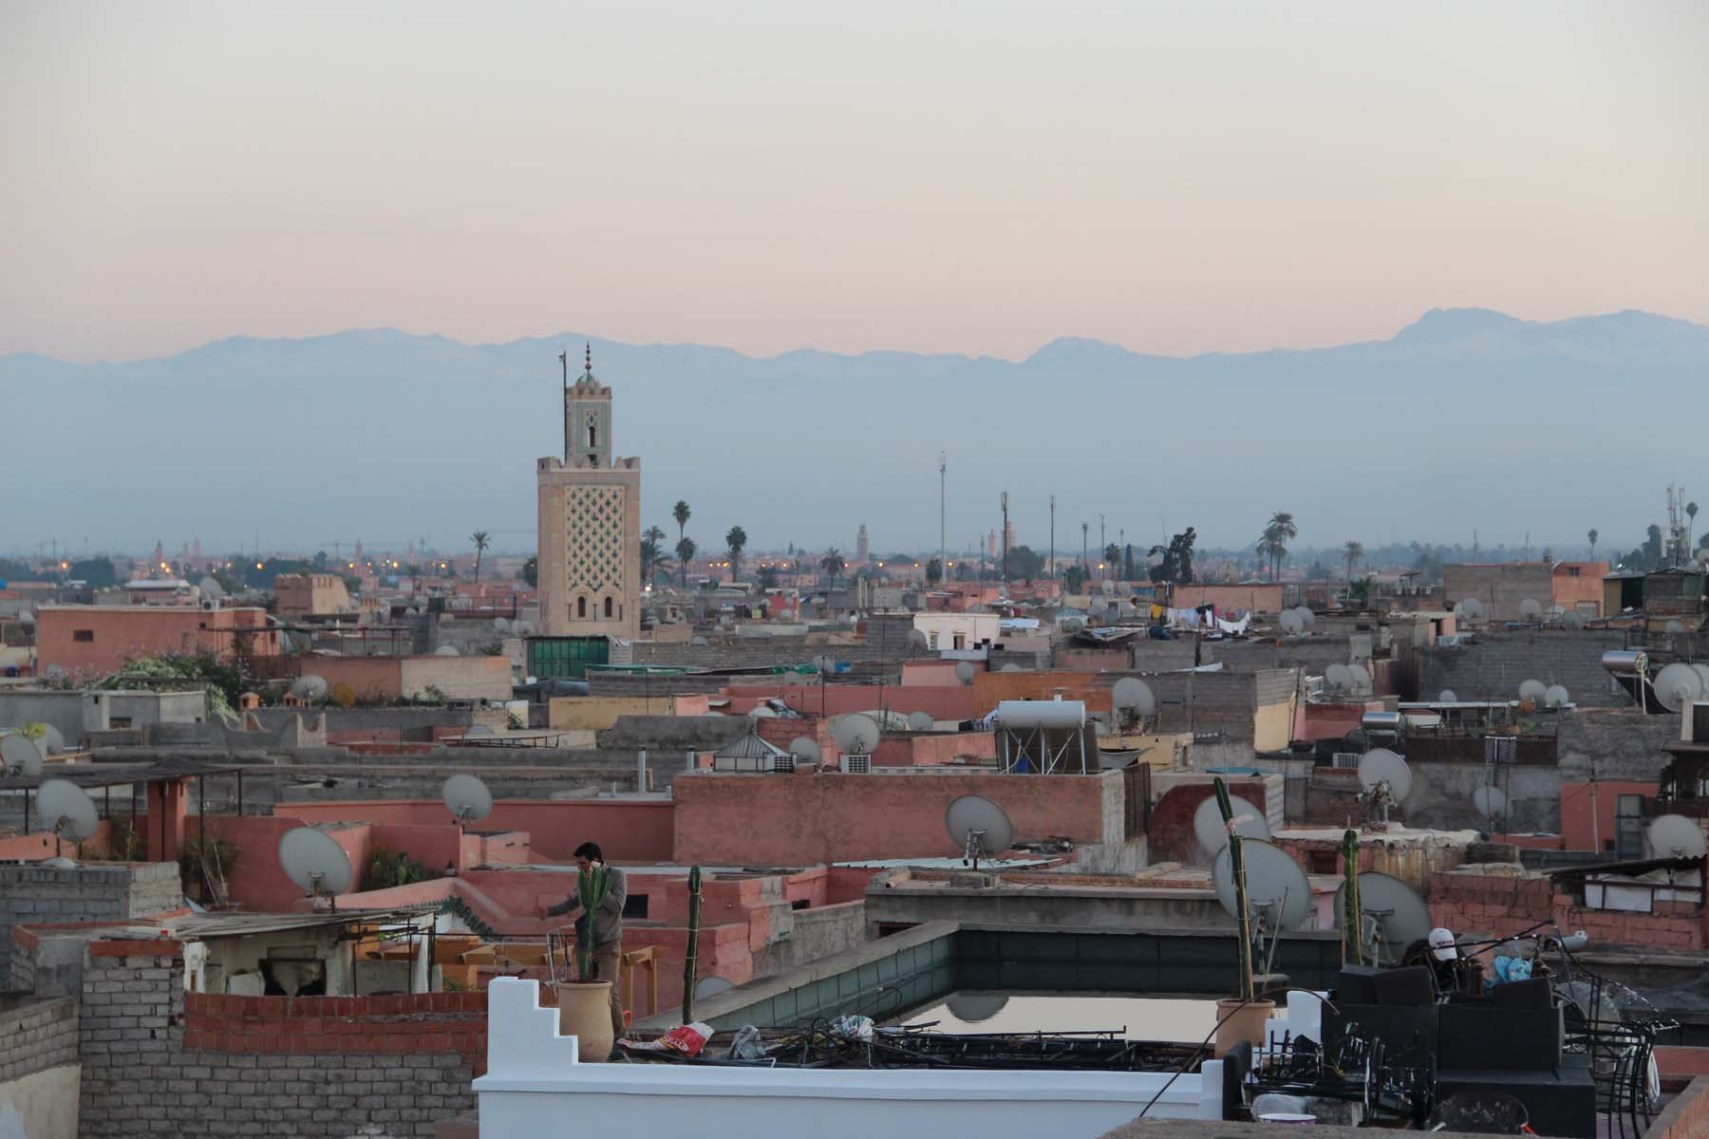 View of Marrakech from the photography museum